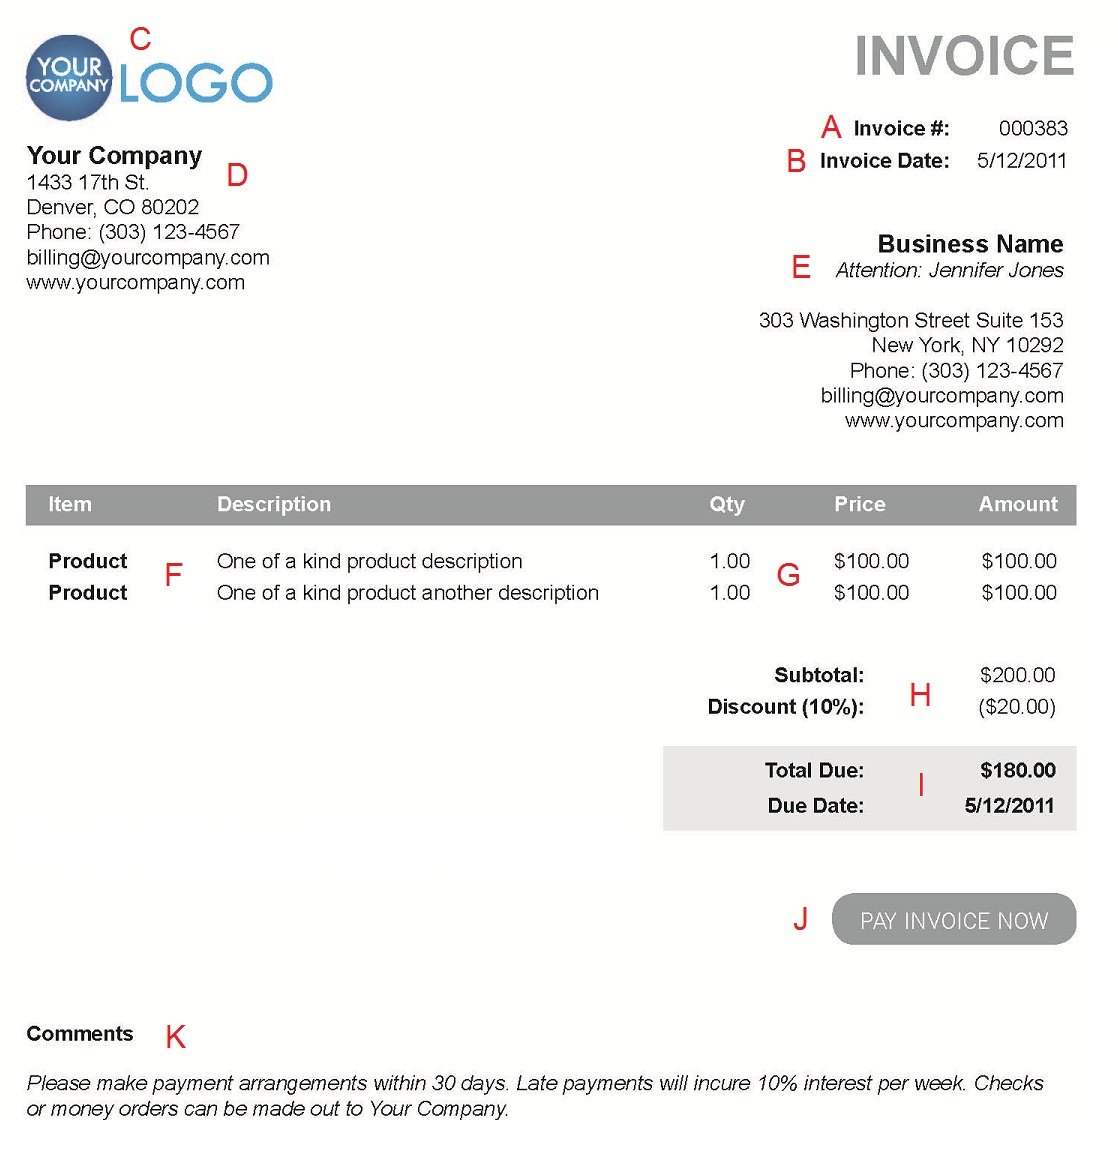 Theologygeekblogus  Sweet The  Different Sections Of An Electronic Payment Invoice With Entrancing A  With Attractive Receiving Receipt Also Charitable Receipts In Addition Printable Receipt Free And Lic Policy Receipts Online As Well As What Can I Claim On Tax Without Receipts  Additionally Print Receipts Online From Paysimplecom With Theologygeekblogus  Entrancing The  Different Sections Of An Electronic Payment Invoice With Attractive A  And Sweet Receiving Receipt Also Charitable Receipts In Addition Printable Receipt Free From Paysimplecom